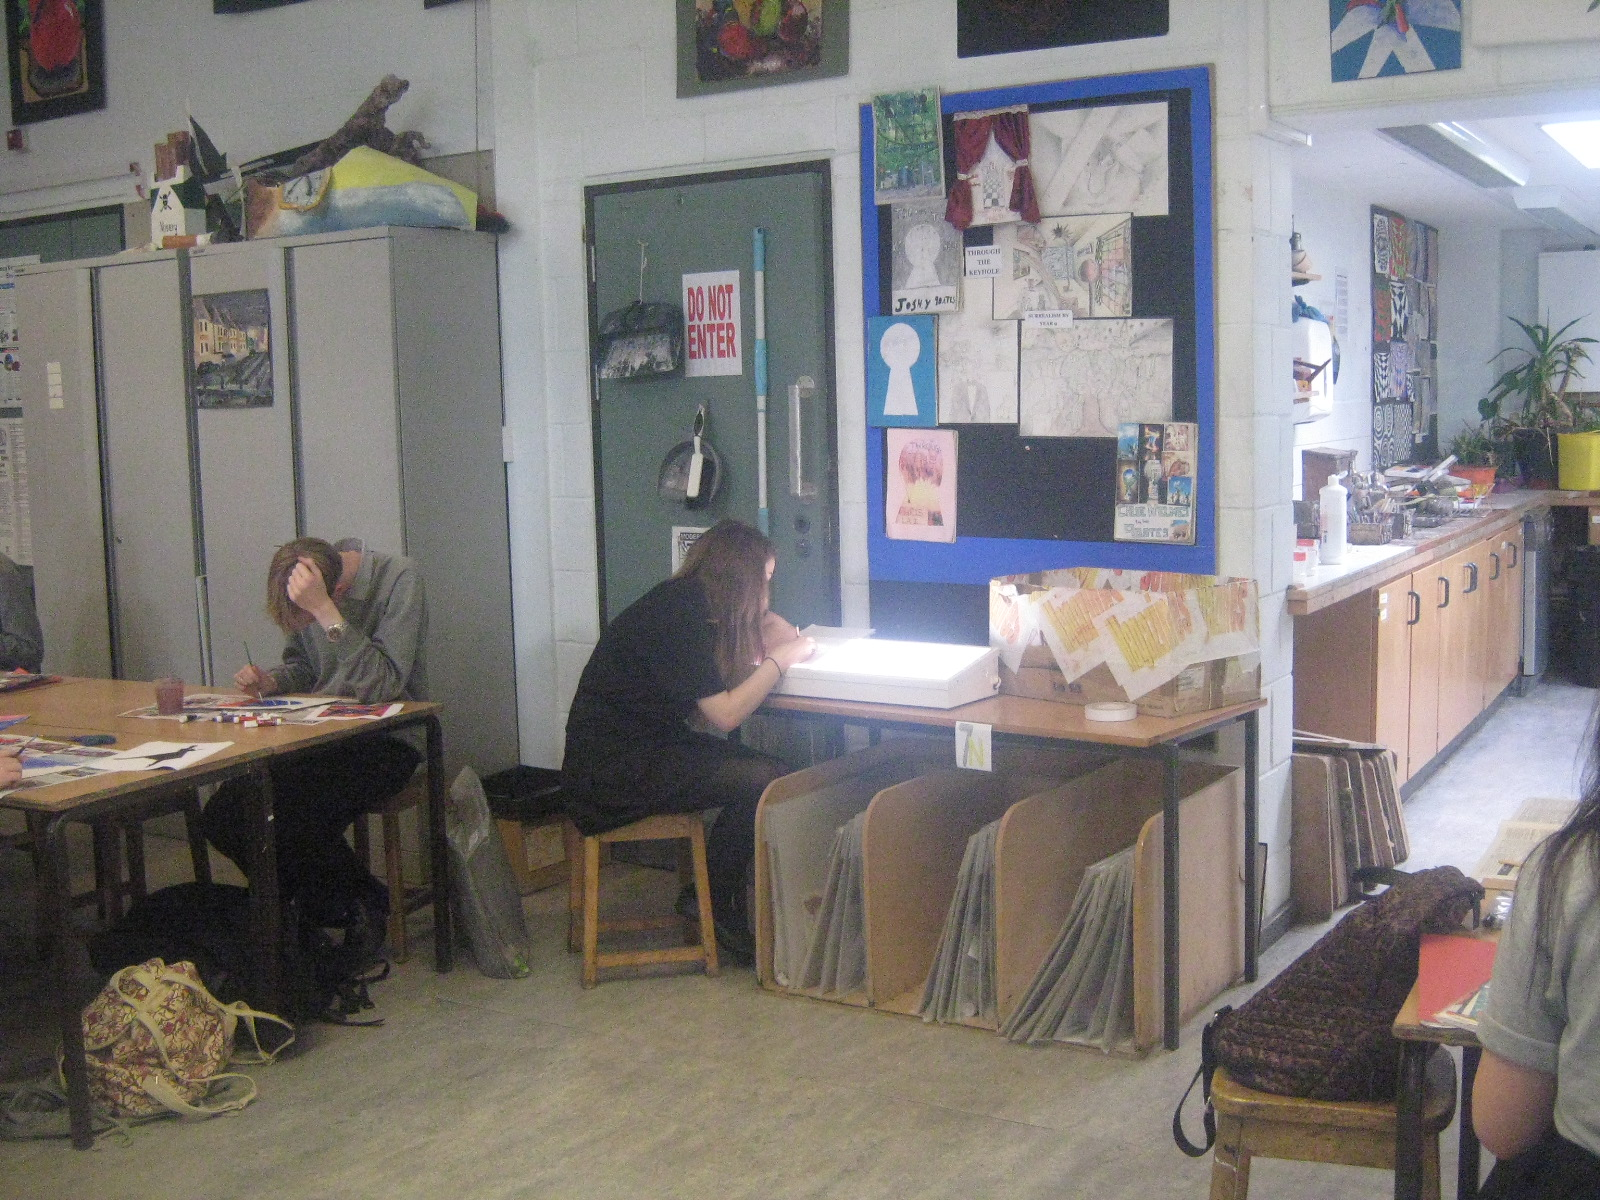 Year 11s Working in the Classroom